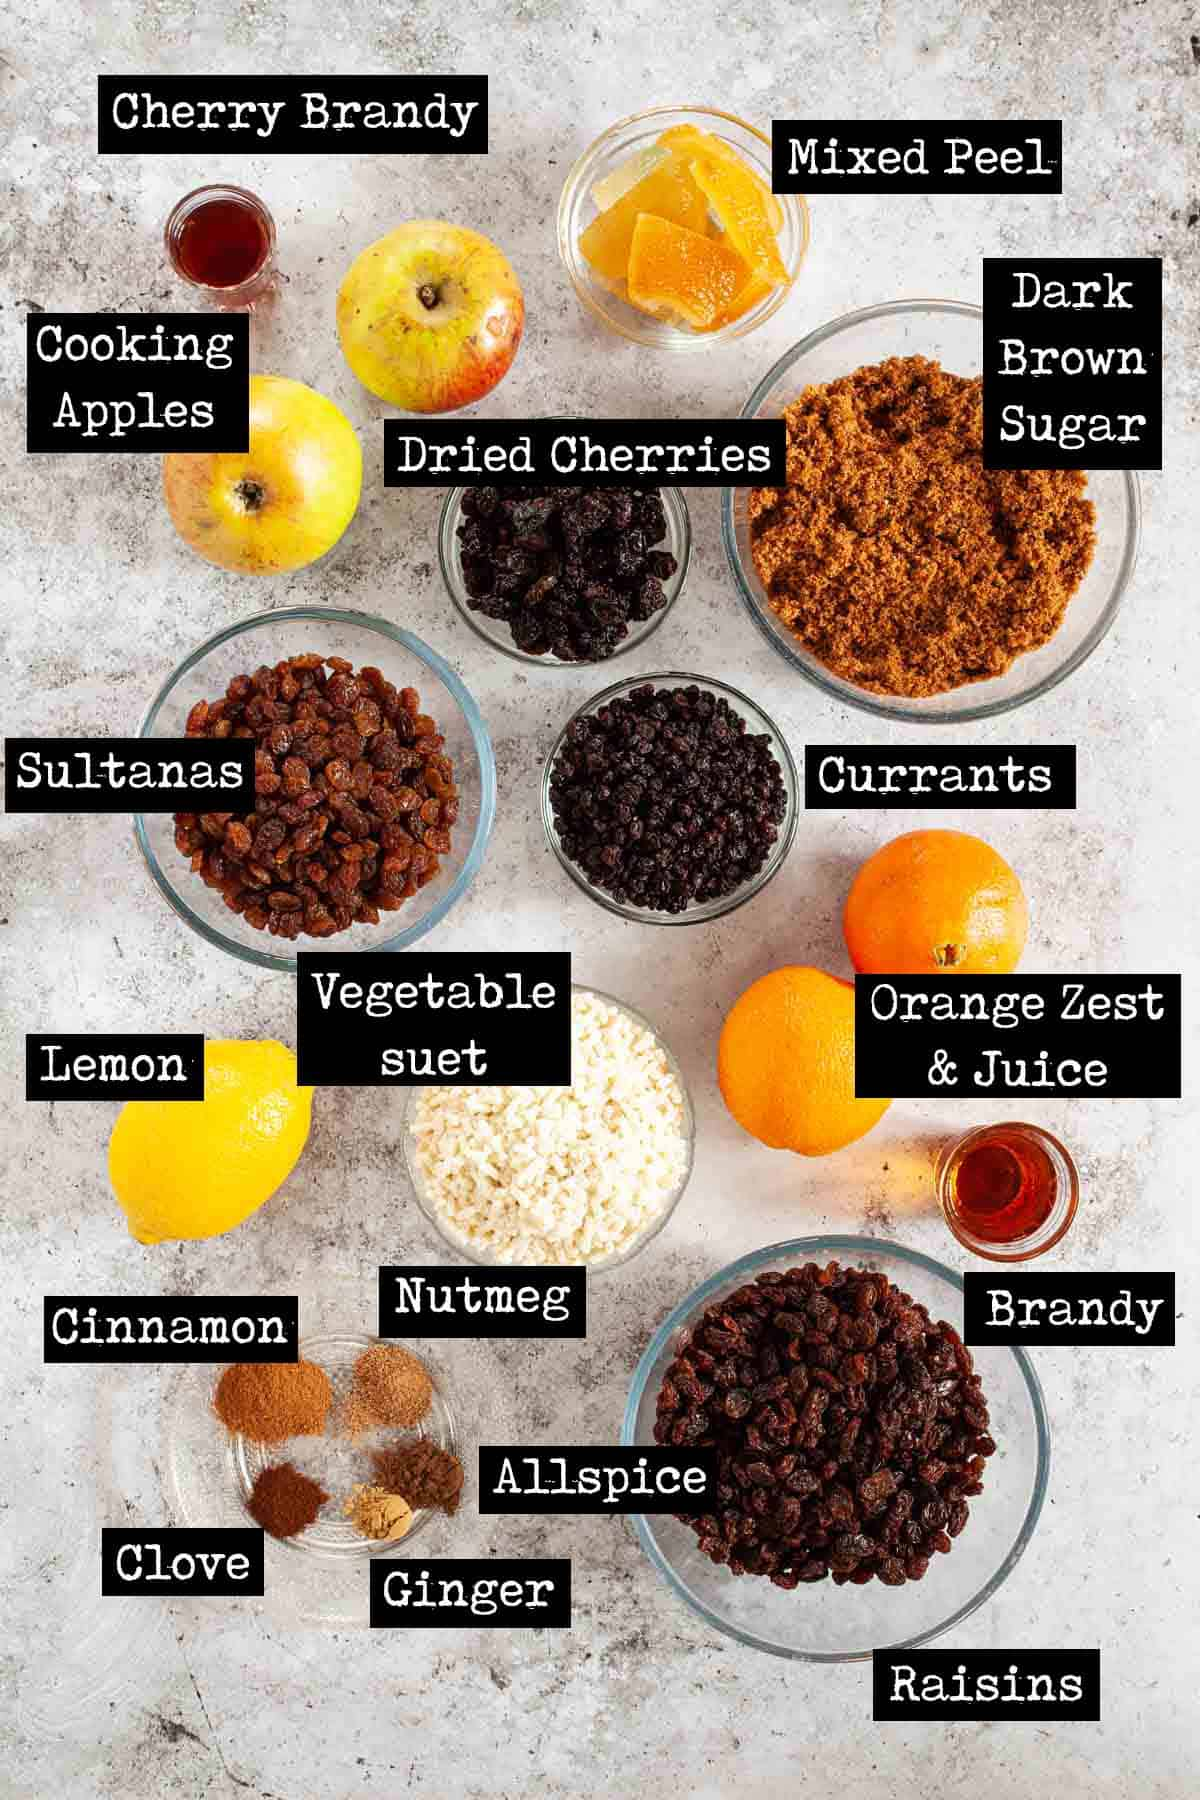 Ingredients for Mince pie filling with text overlay